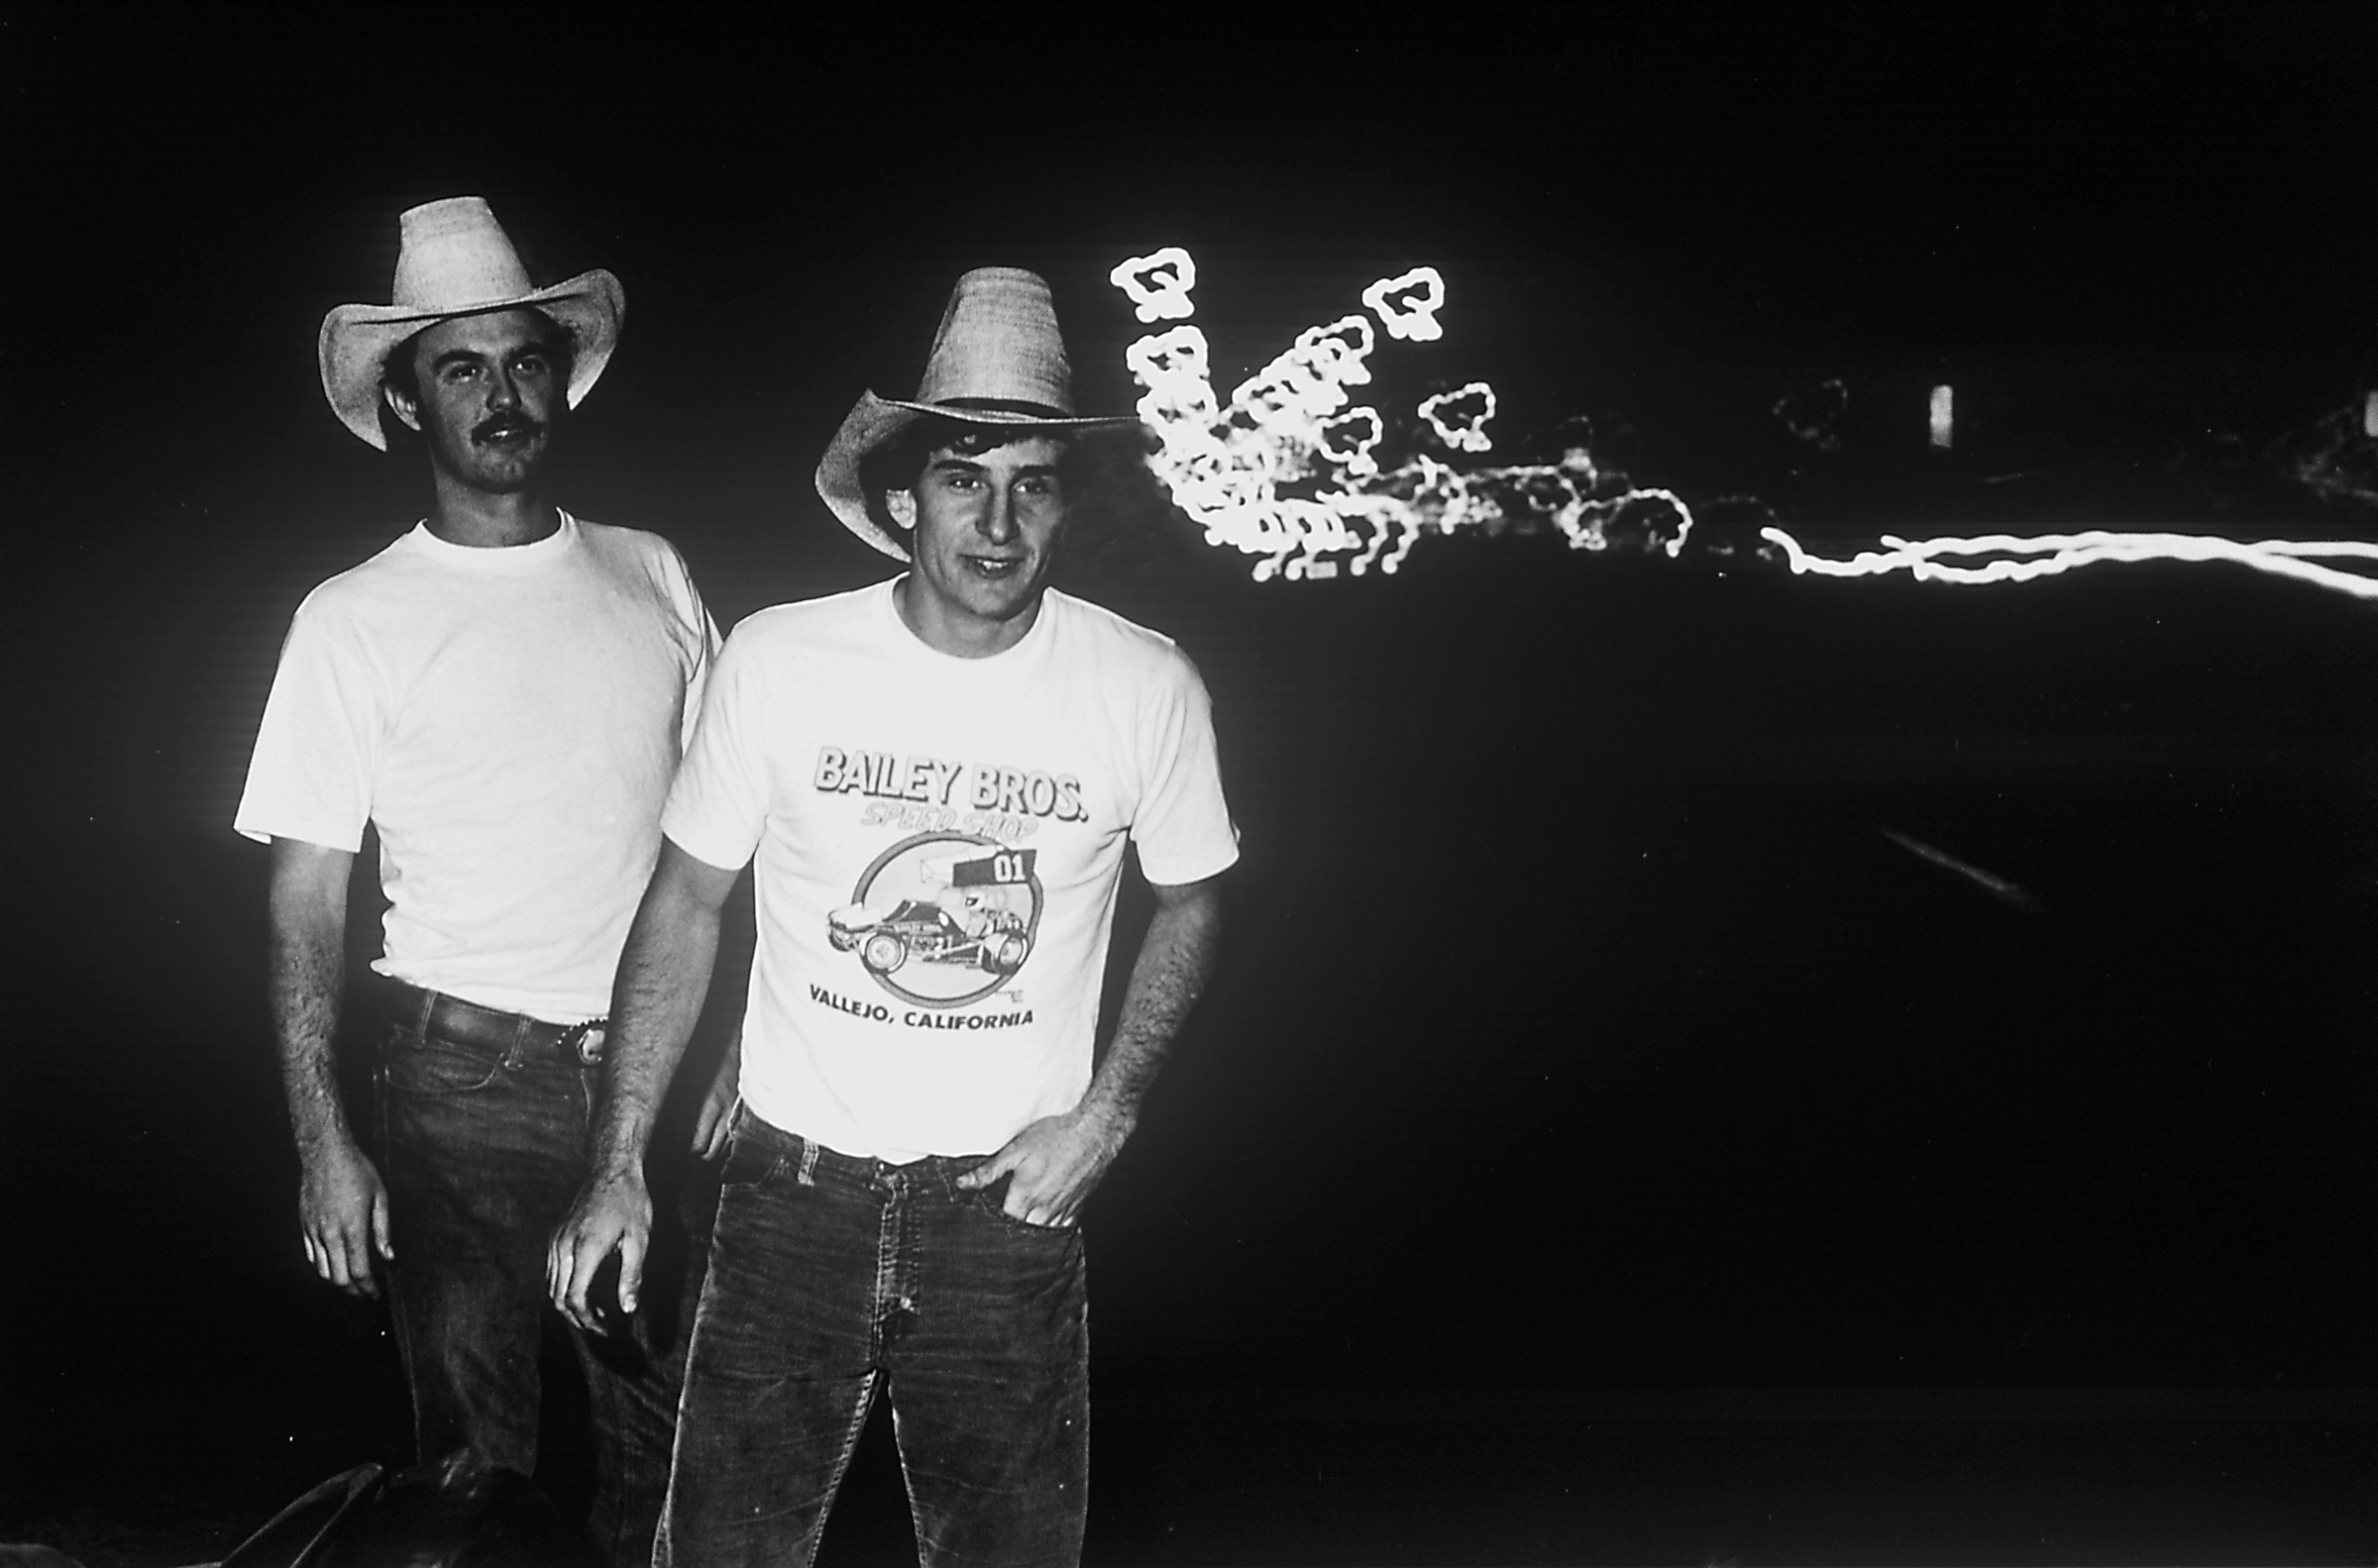 Cowboys from Vallejo